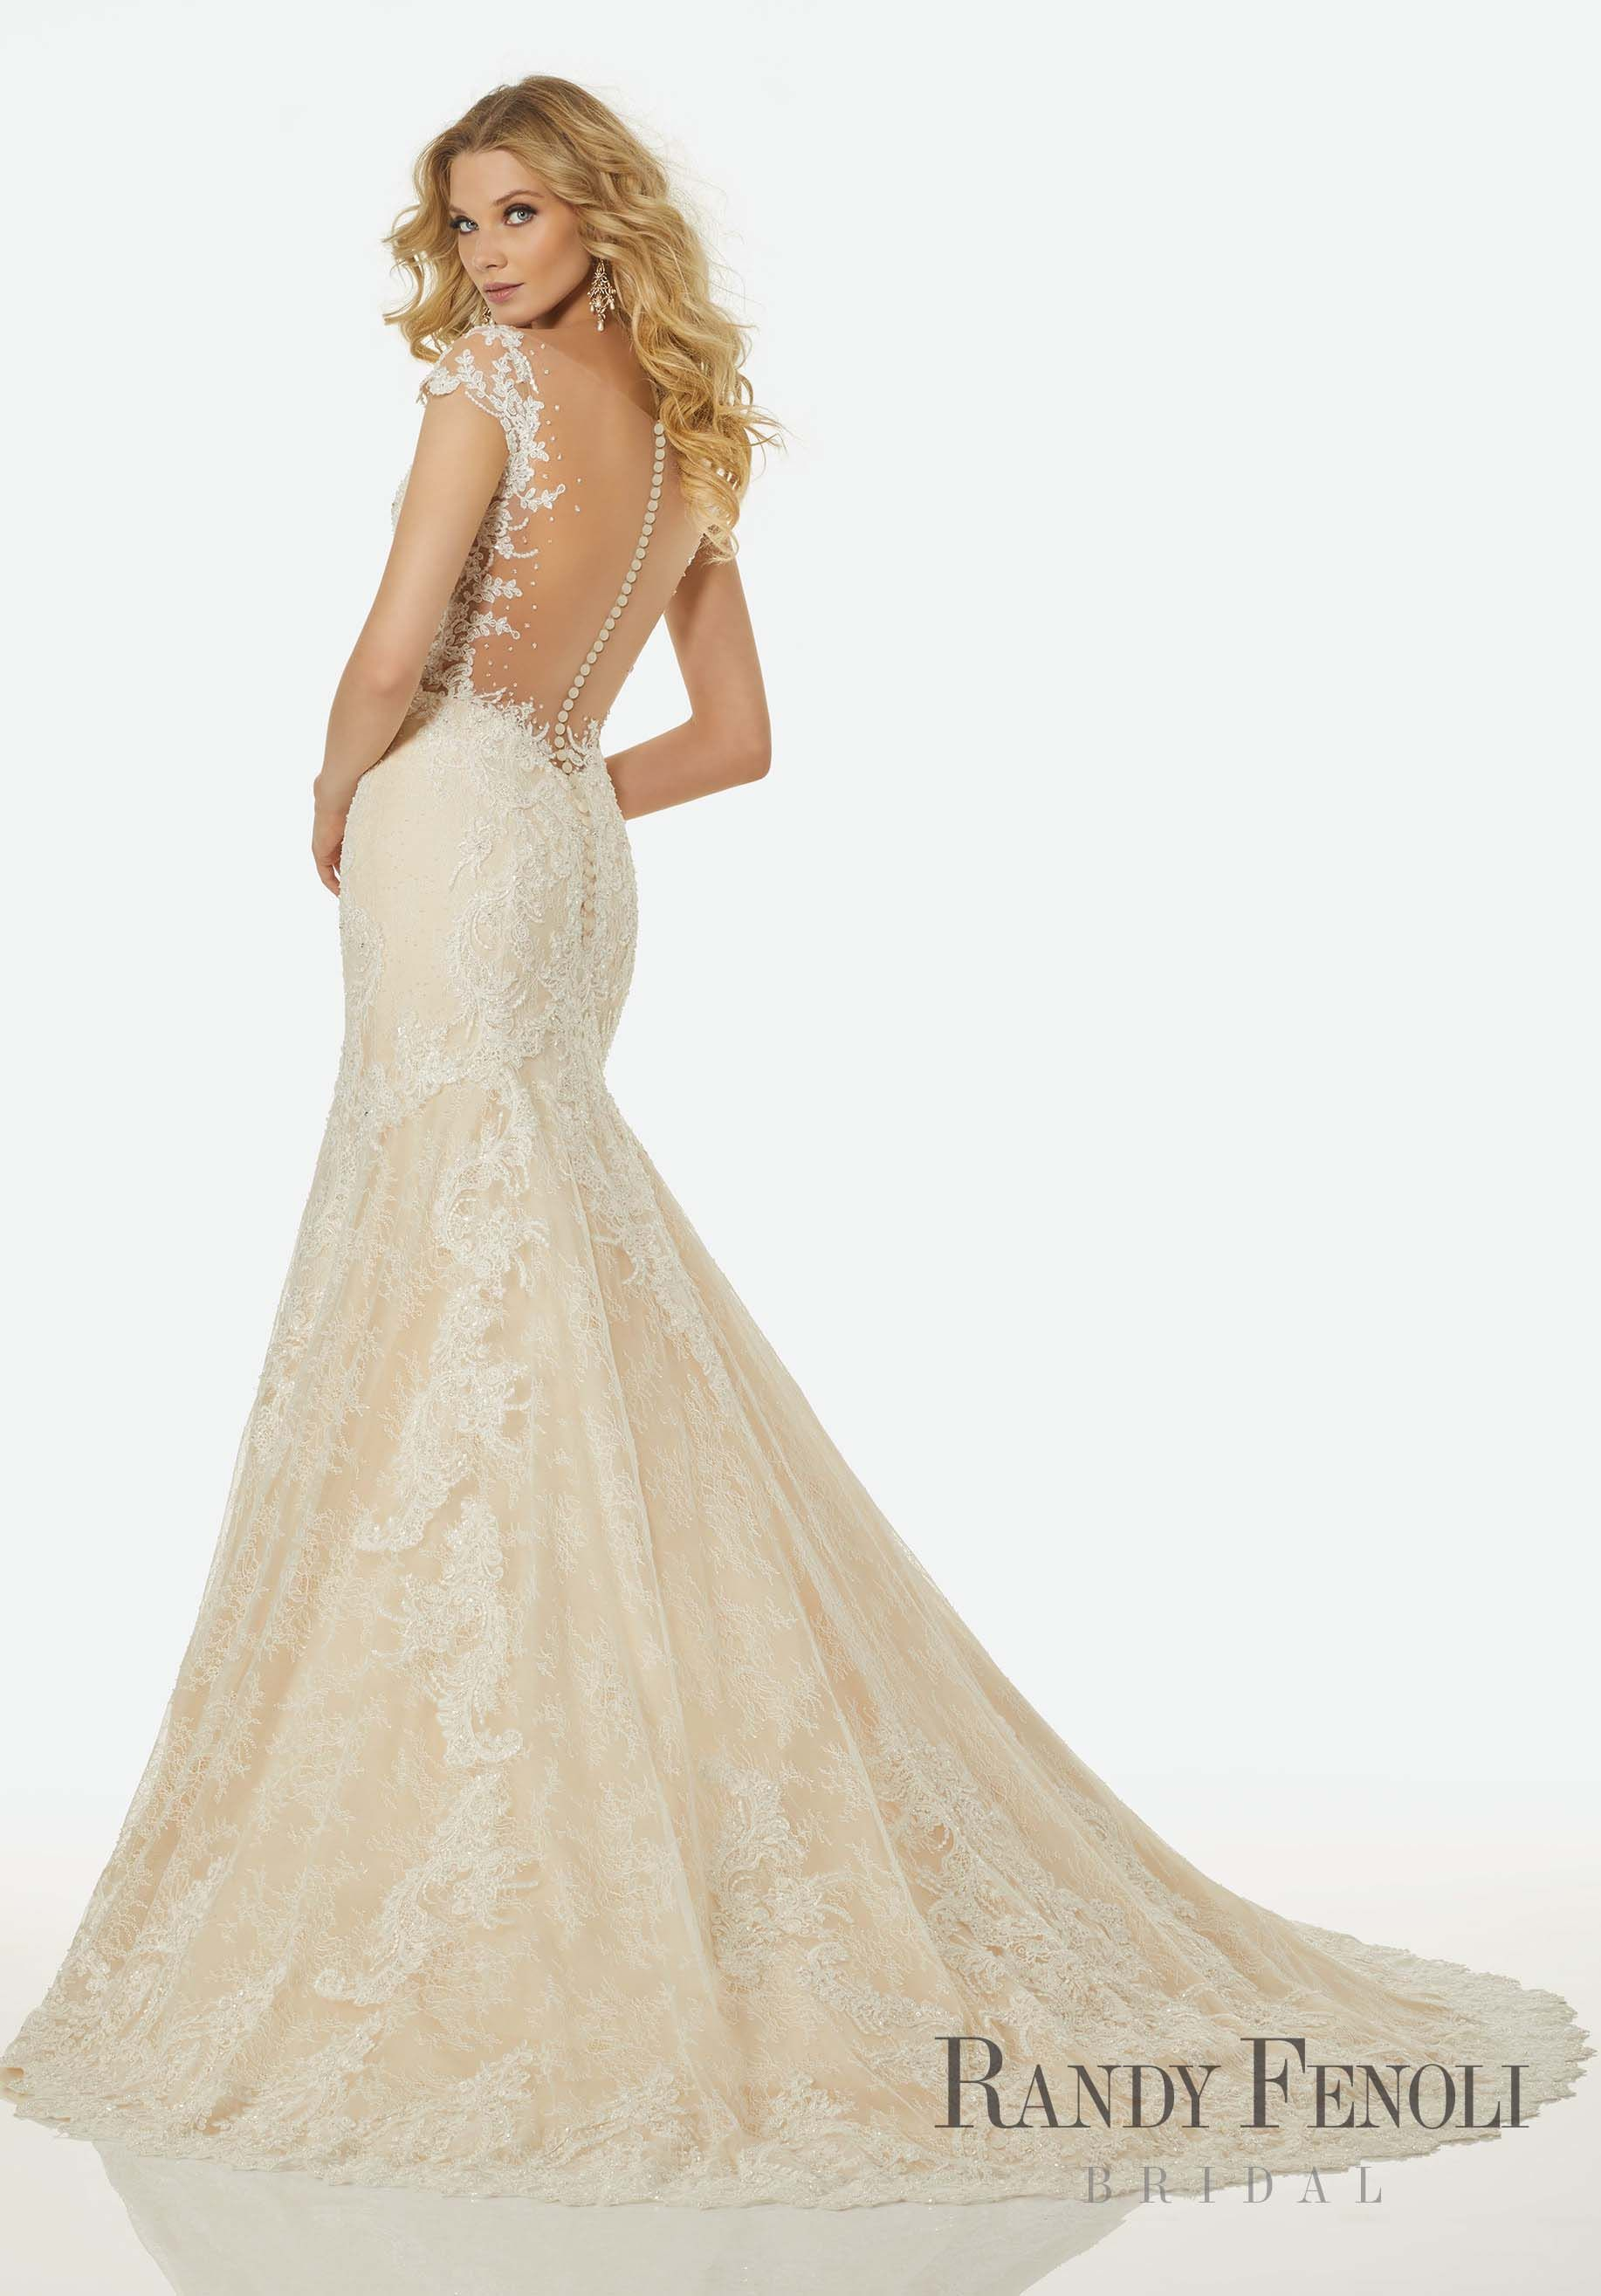 Randy fenoli bridal jasmine wedding dress style 3407 crystal randy fenoli bridal jasmine wedding dress style 3407 crystal beaded alenon lace appliqus junglespirit Gallery